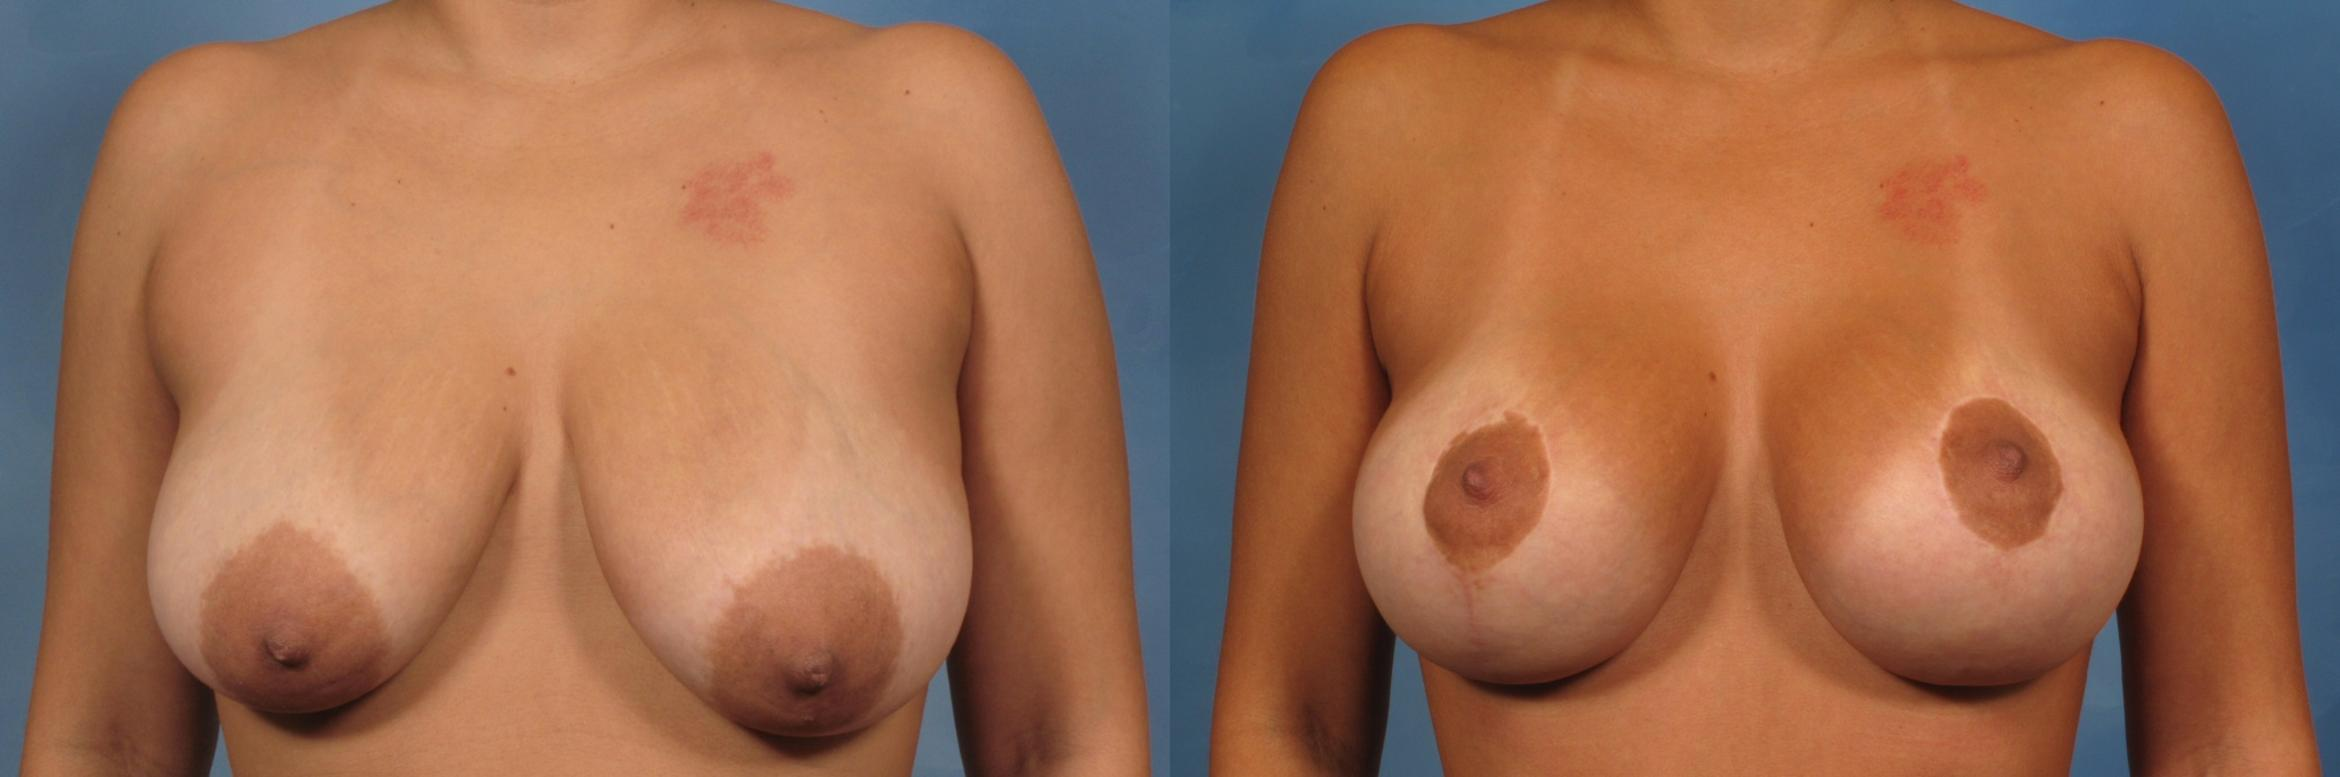 Breast Lift Case 138 Before & After View #1 | Naples, FL | Kent V. Hasen, M.D.